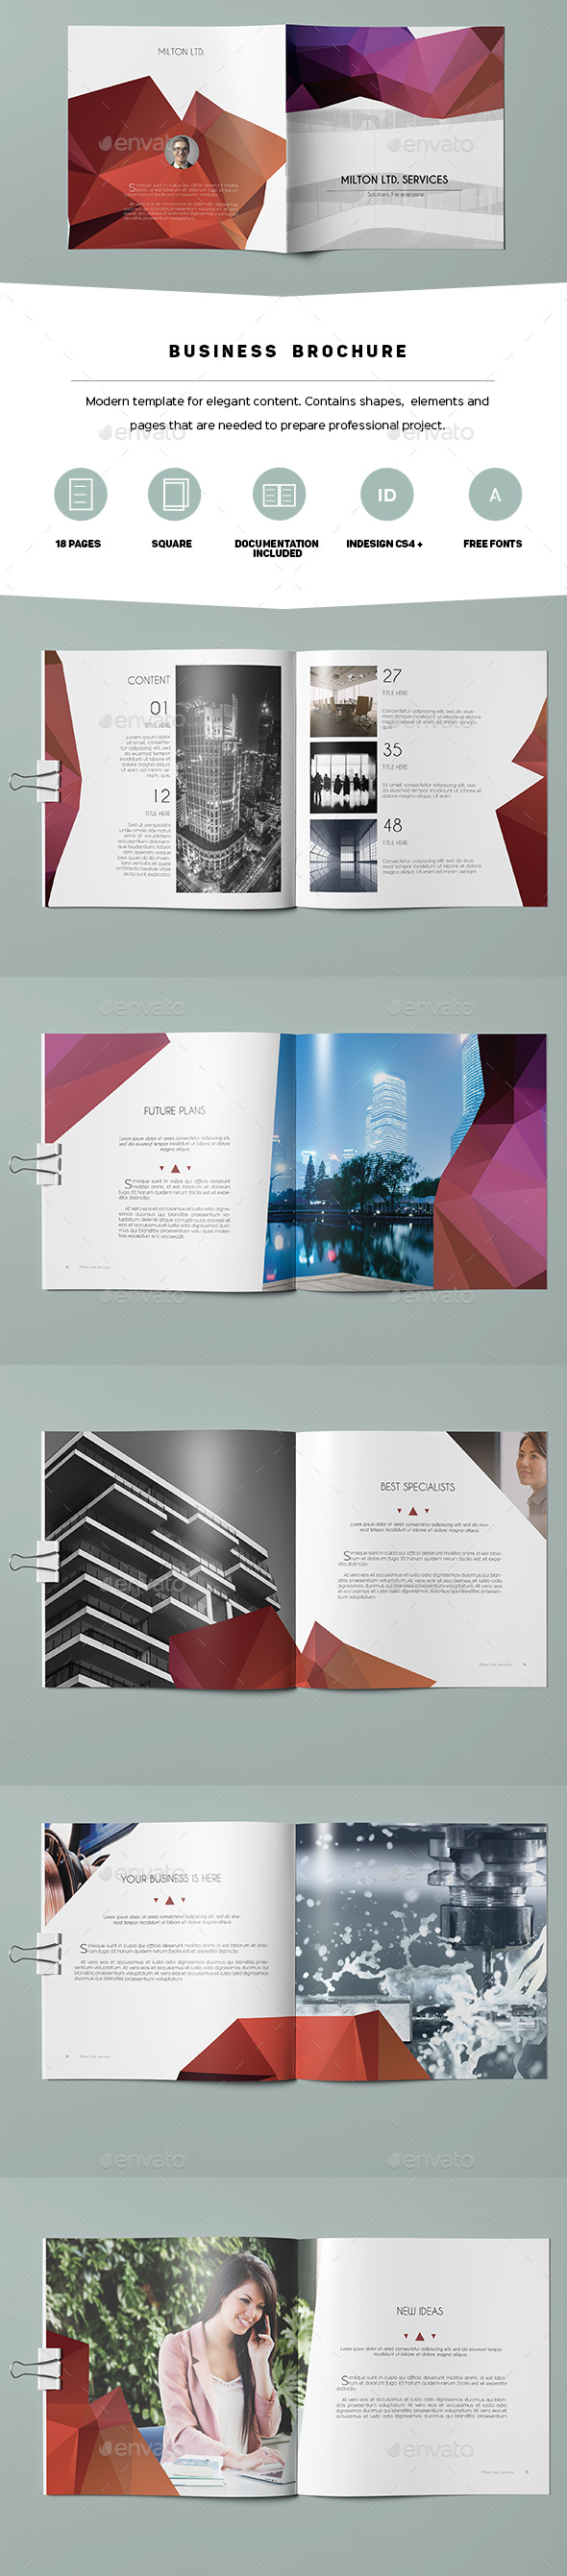 Multipurpose Business Brochure 04 - Corporate Brochures